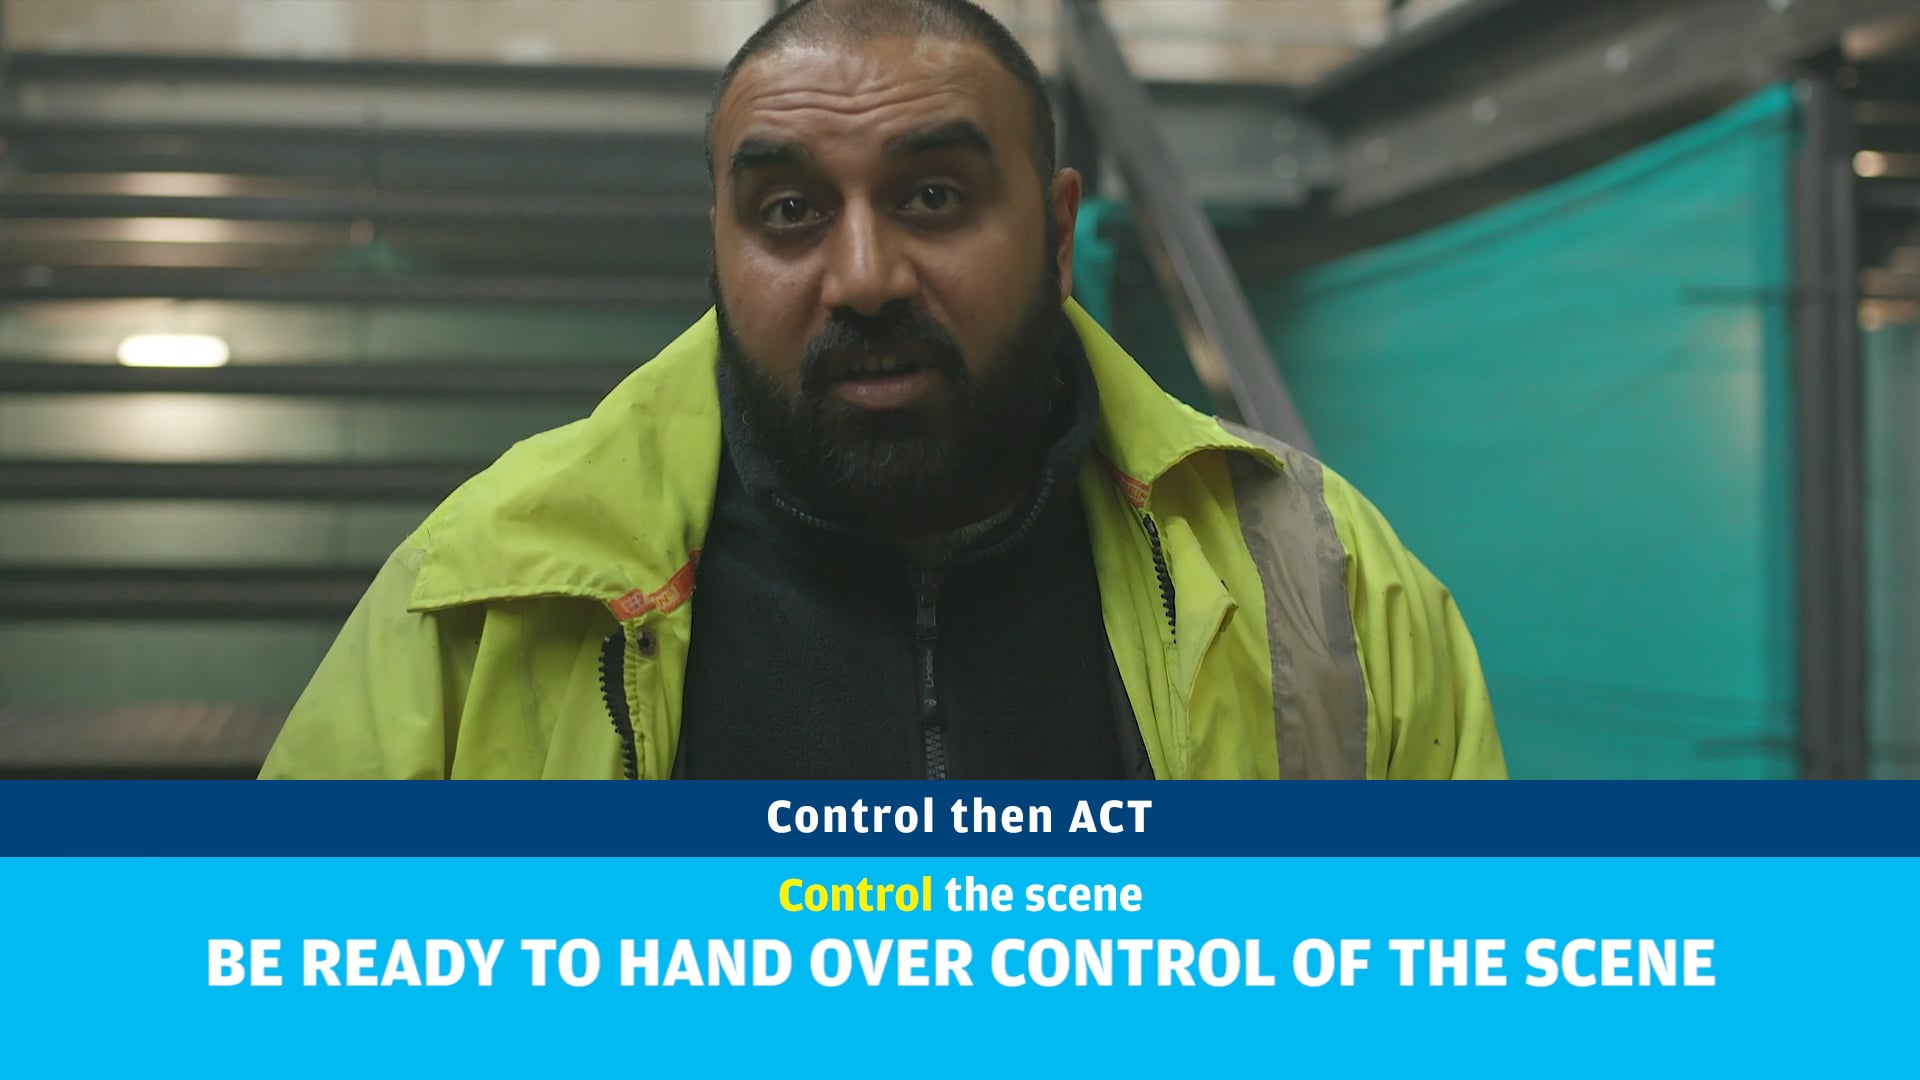 Public information film from citizenAID - Response to a bombing